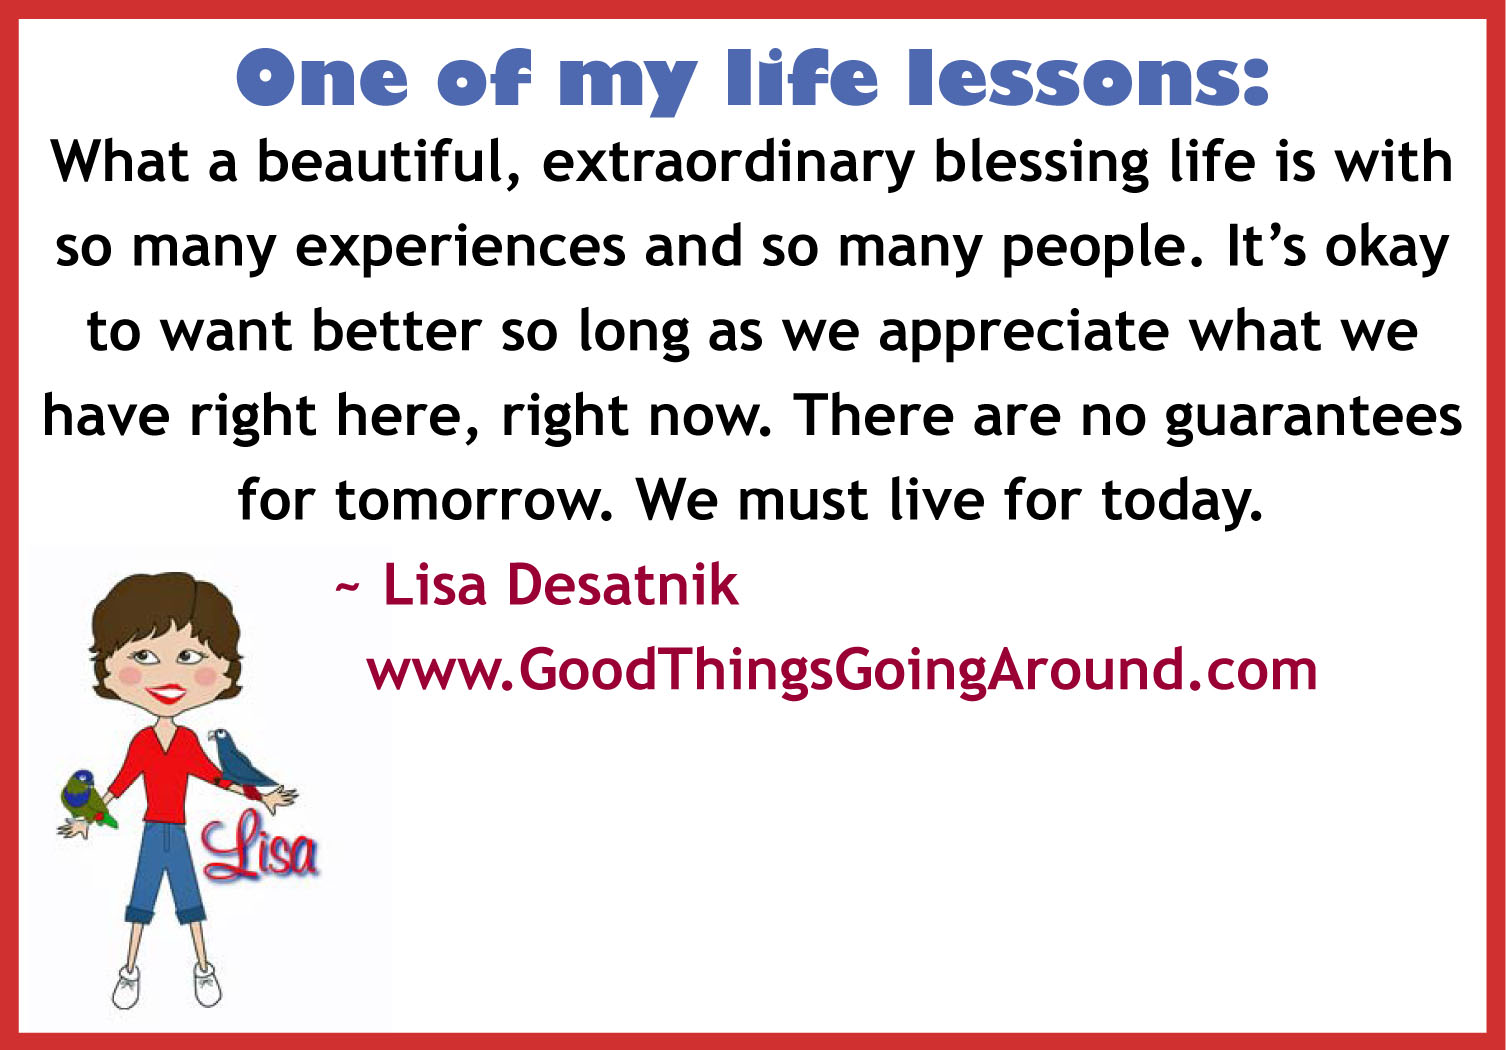 what important lessons in life are Life lessons are loaded with astuteness since they frequently must be scholarly the most difficult way possible in any case, the hardest part of that procedure is understanding that occasionally few out of every odd open door keeps going forever.